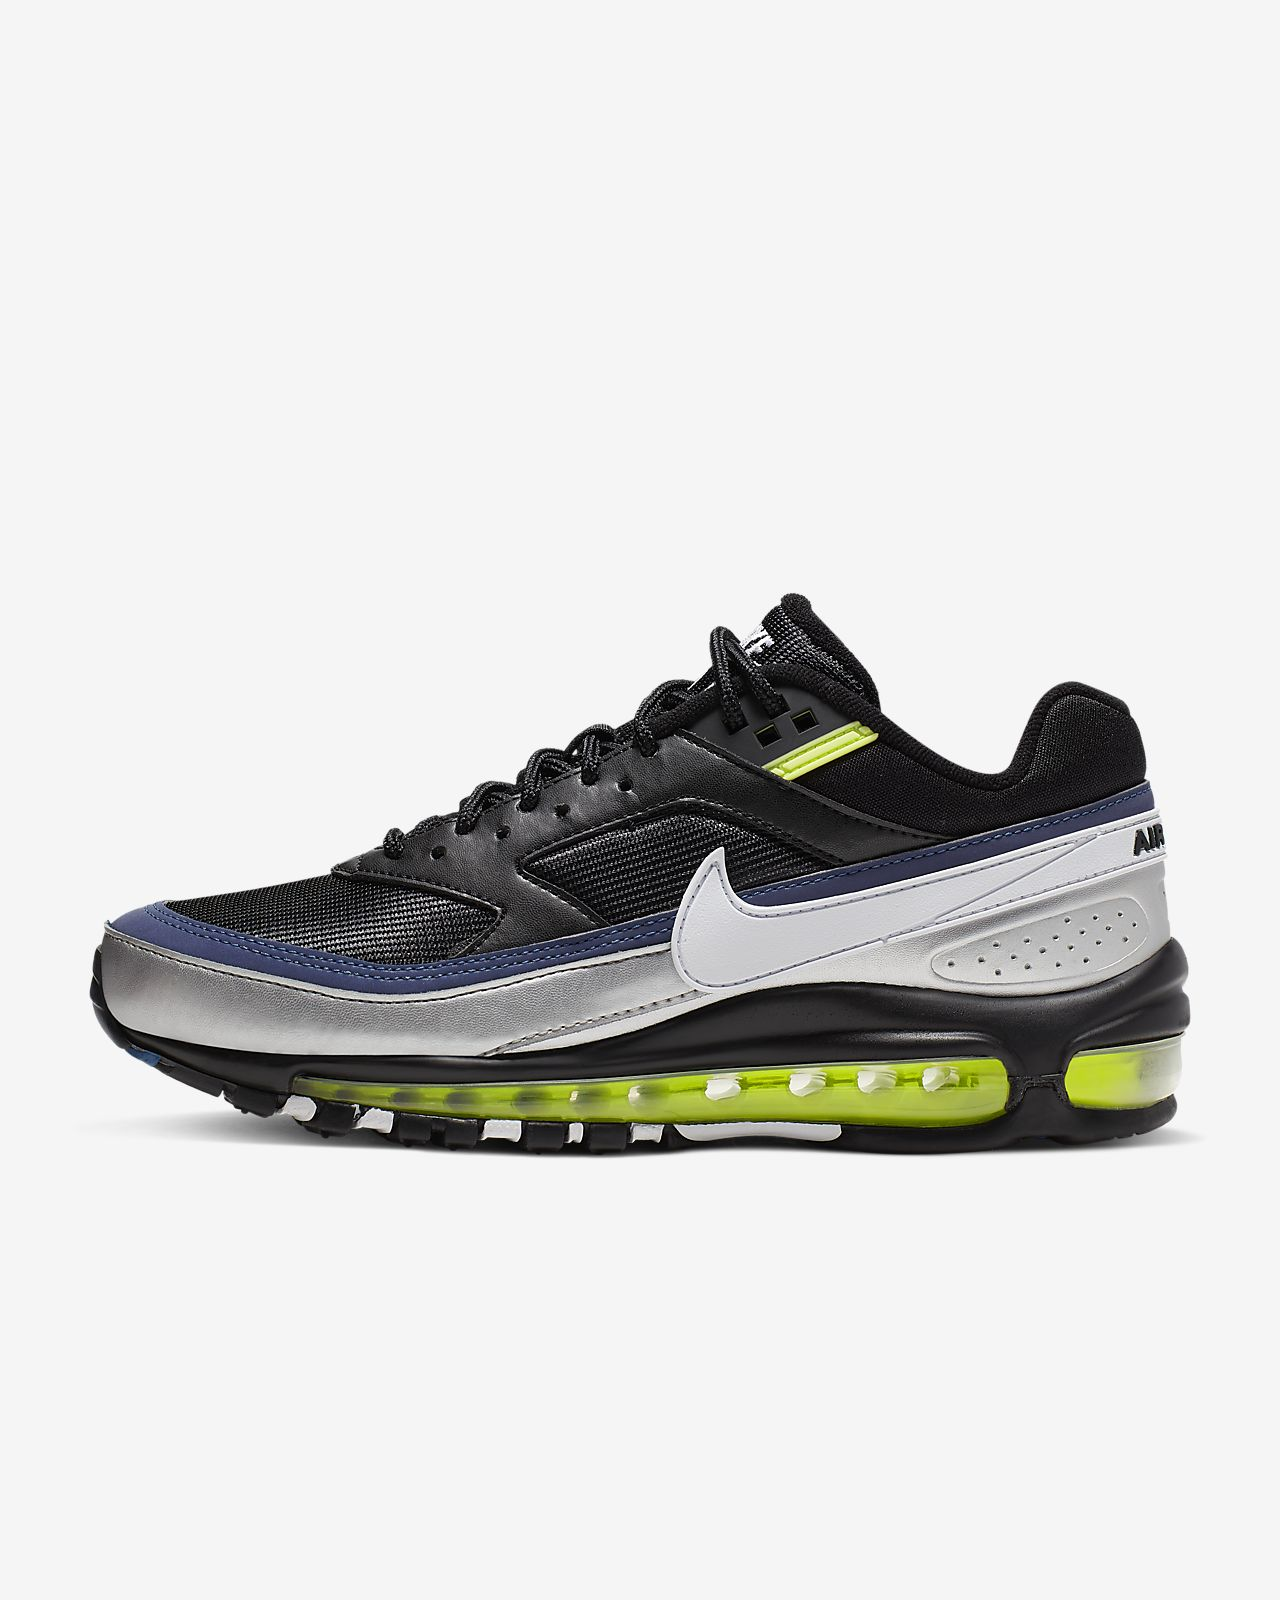 a282d06ba3d Nike Air Max 97 BW Men s Shoe. Nike.com GB